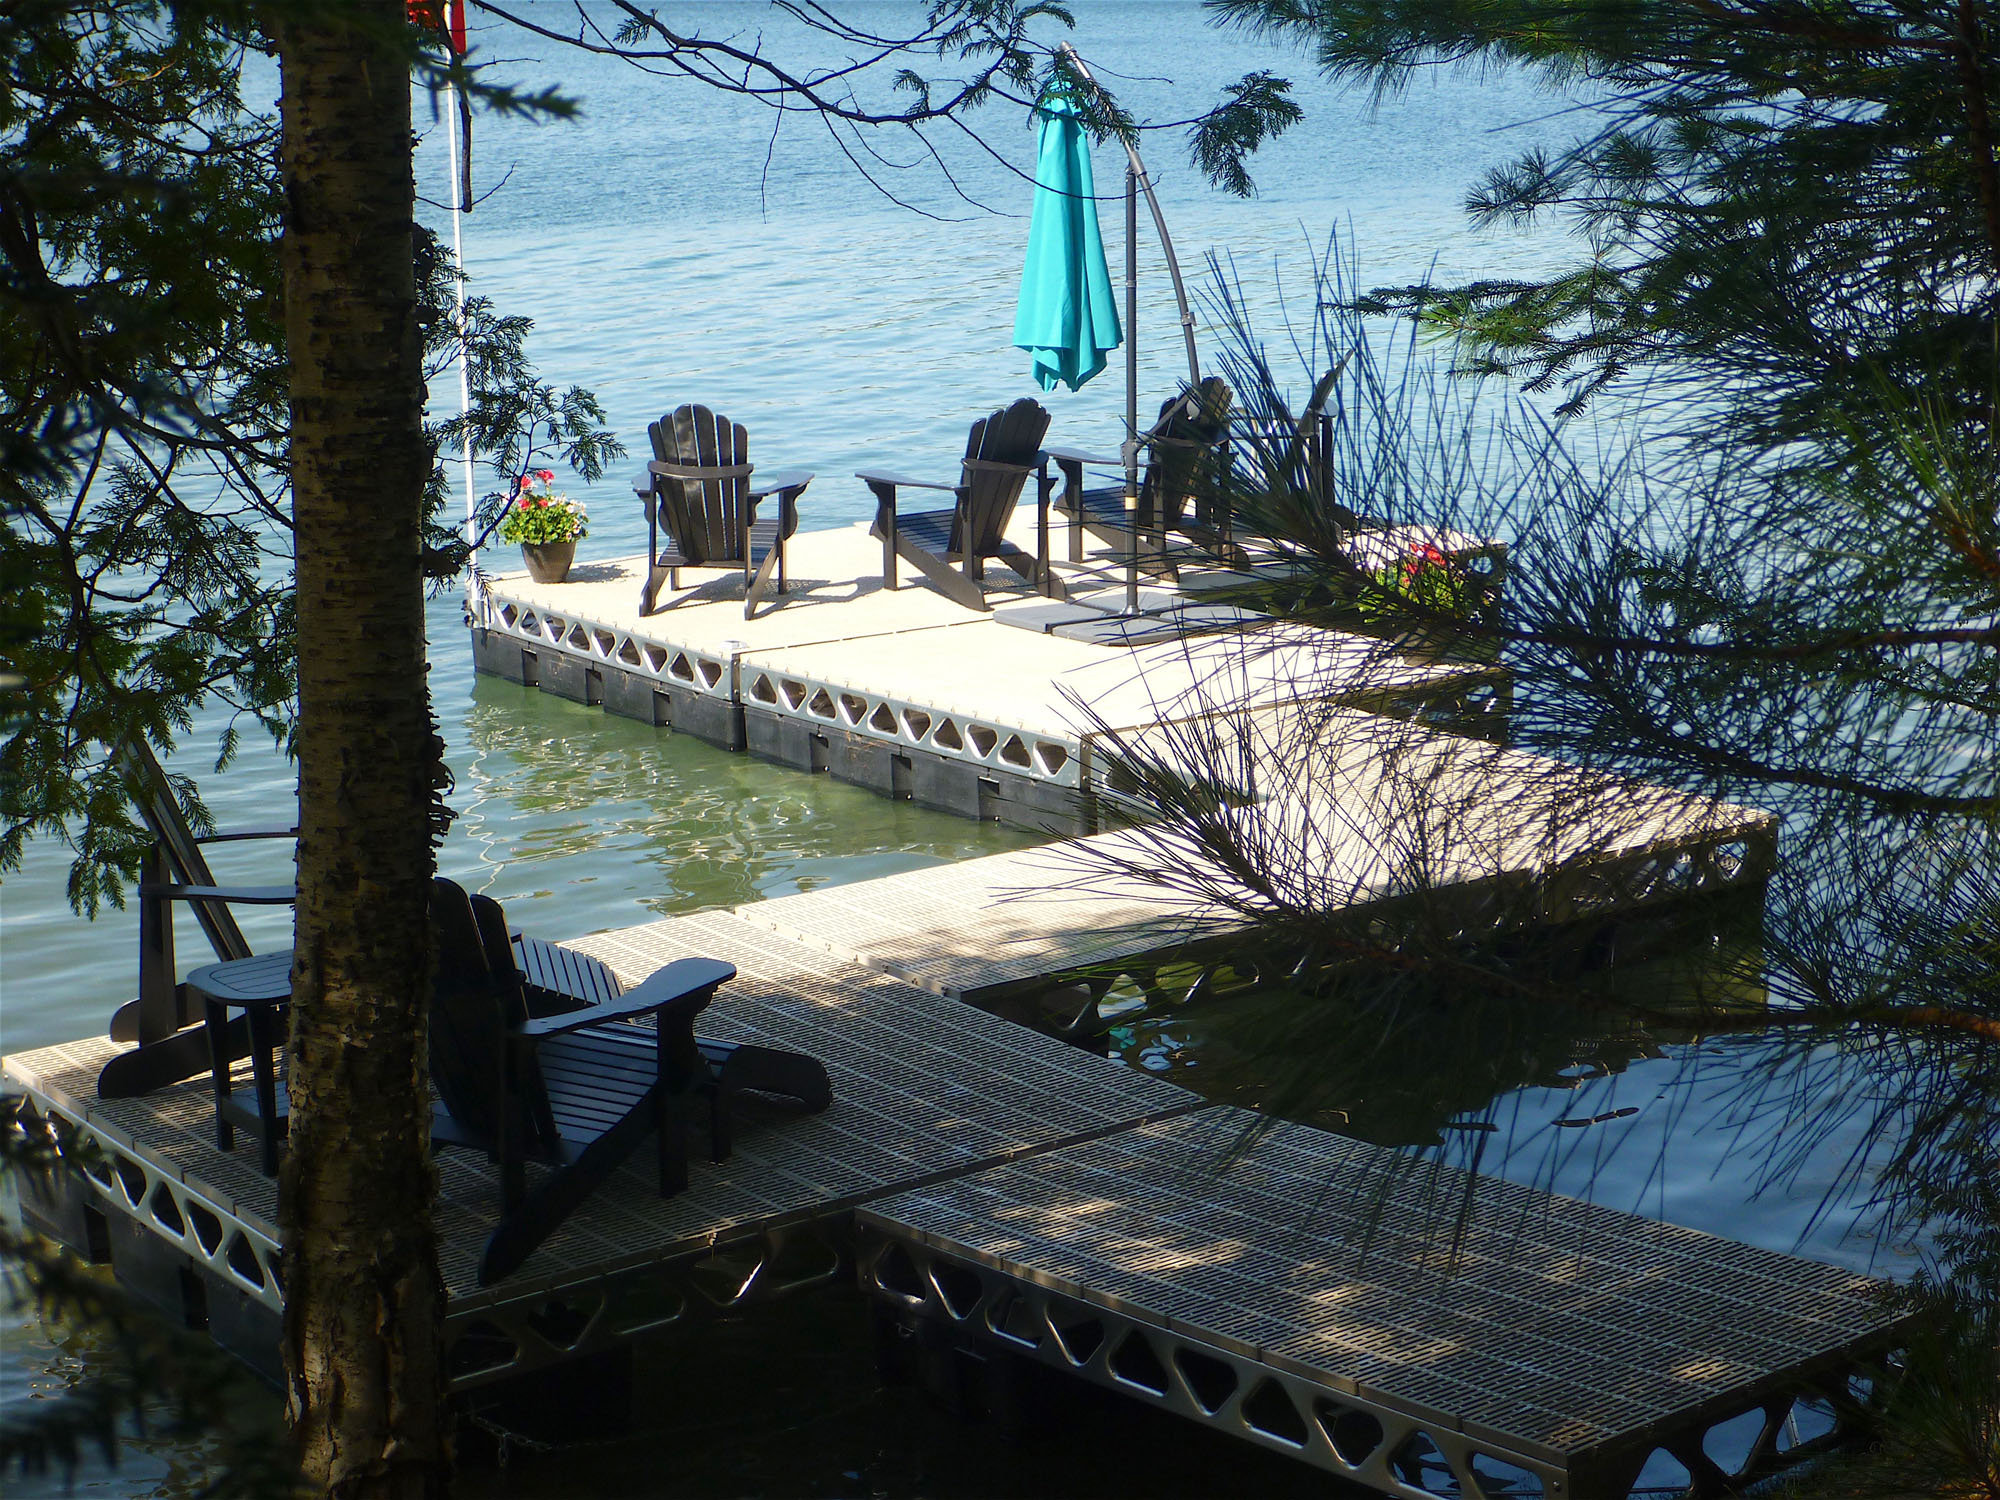 CanadaDocks Customer Dock with ThruFlow decking and Muskoka chairs